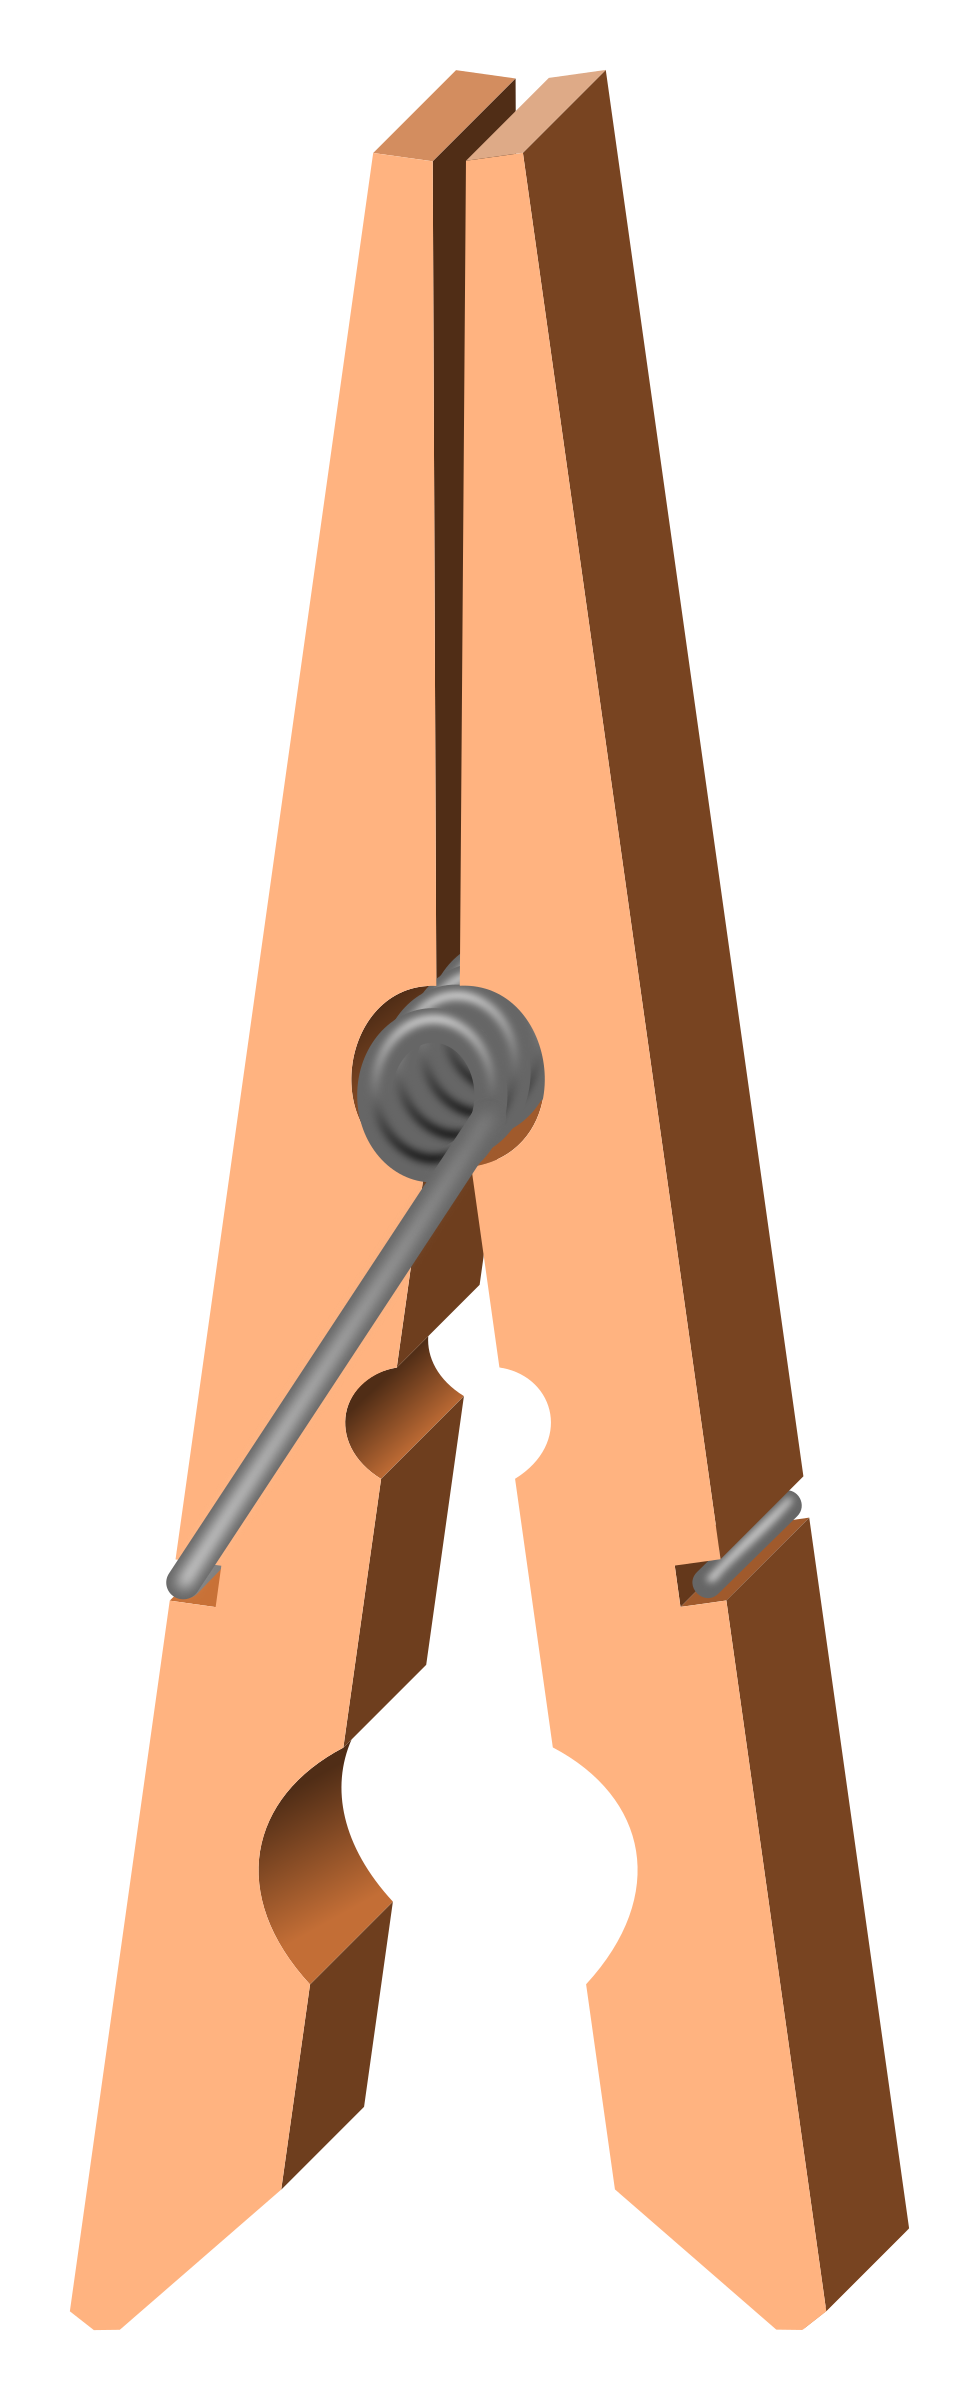 collection of clothes. Pin clipart clothespin